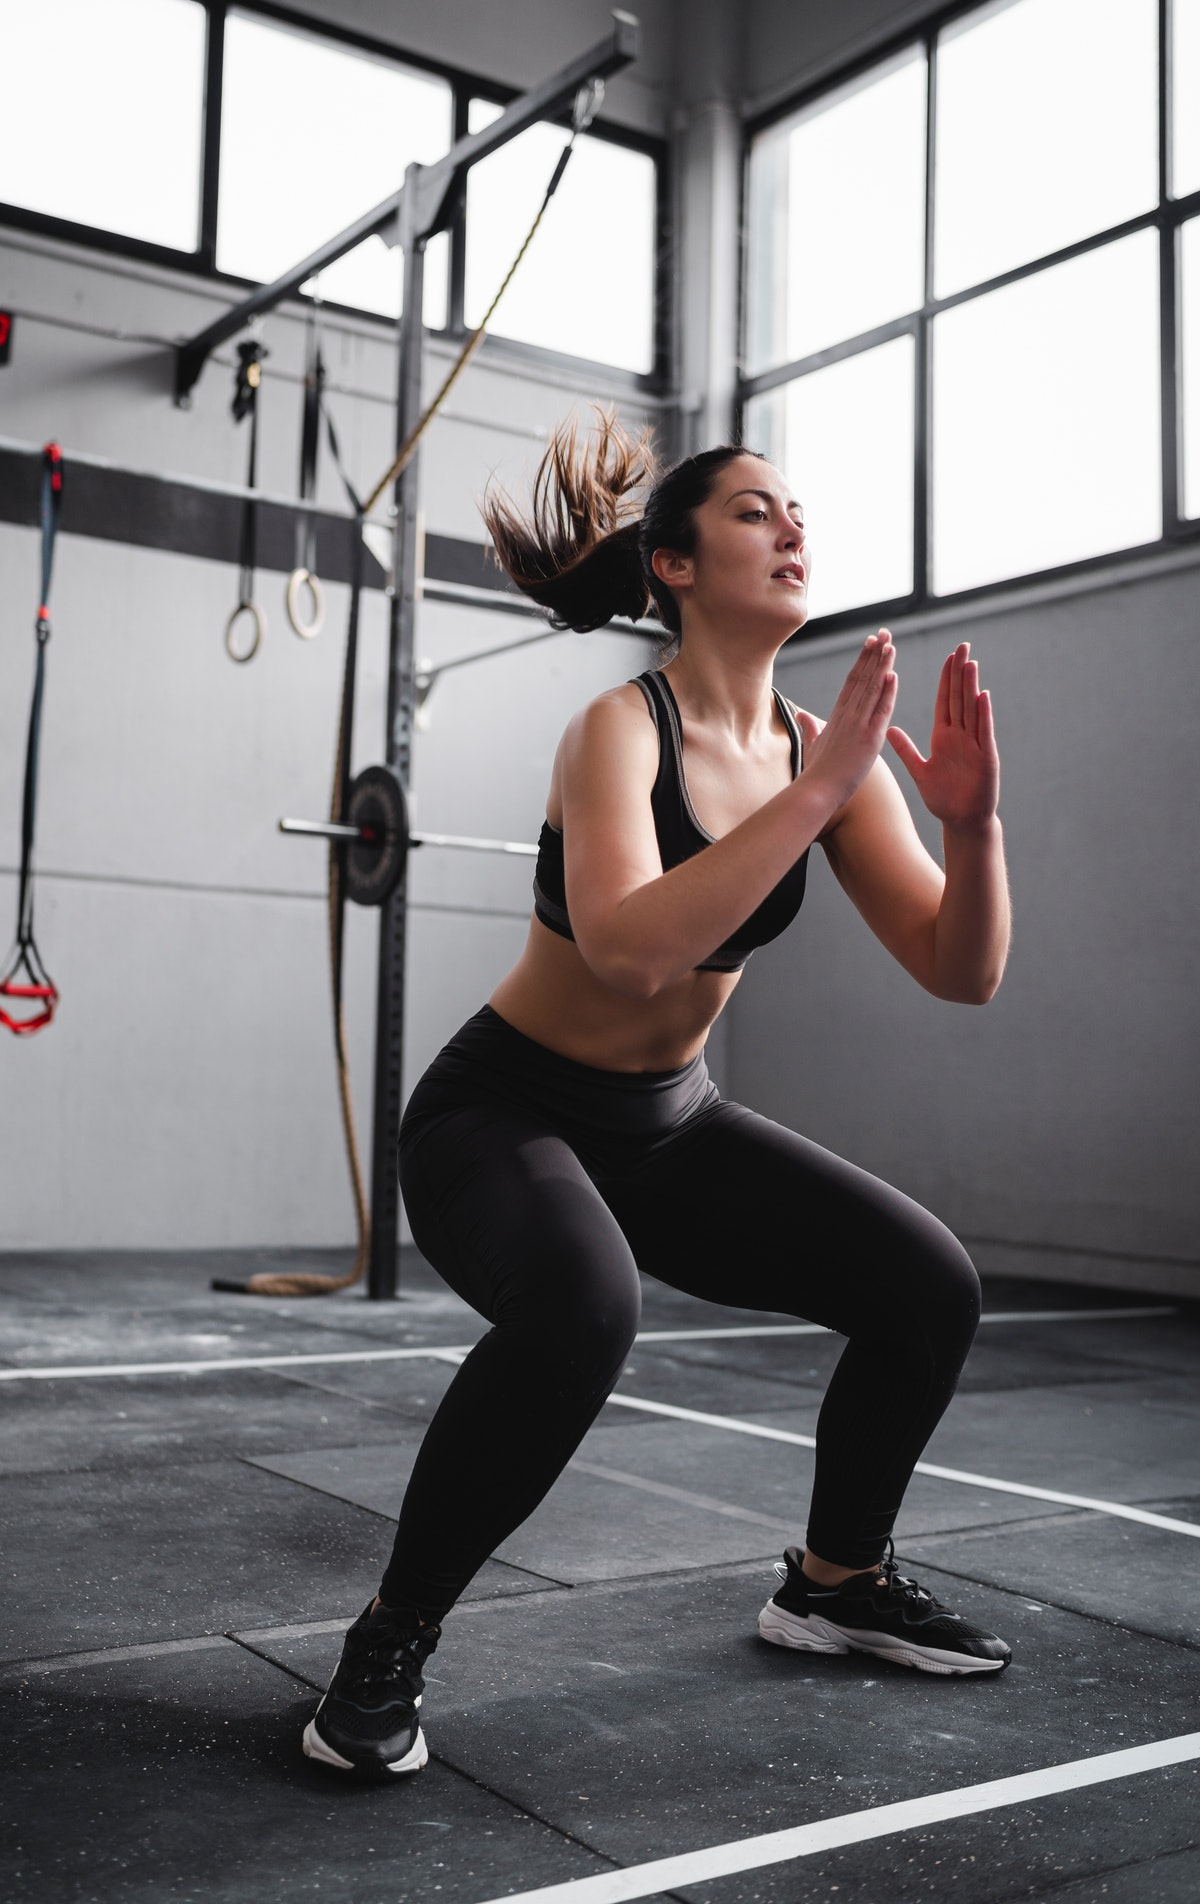 Get low in a classic squat, aka the most fundamental glute exercise.